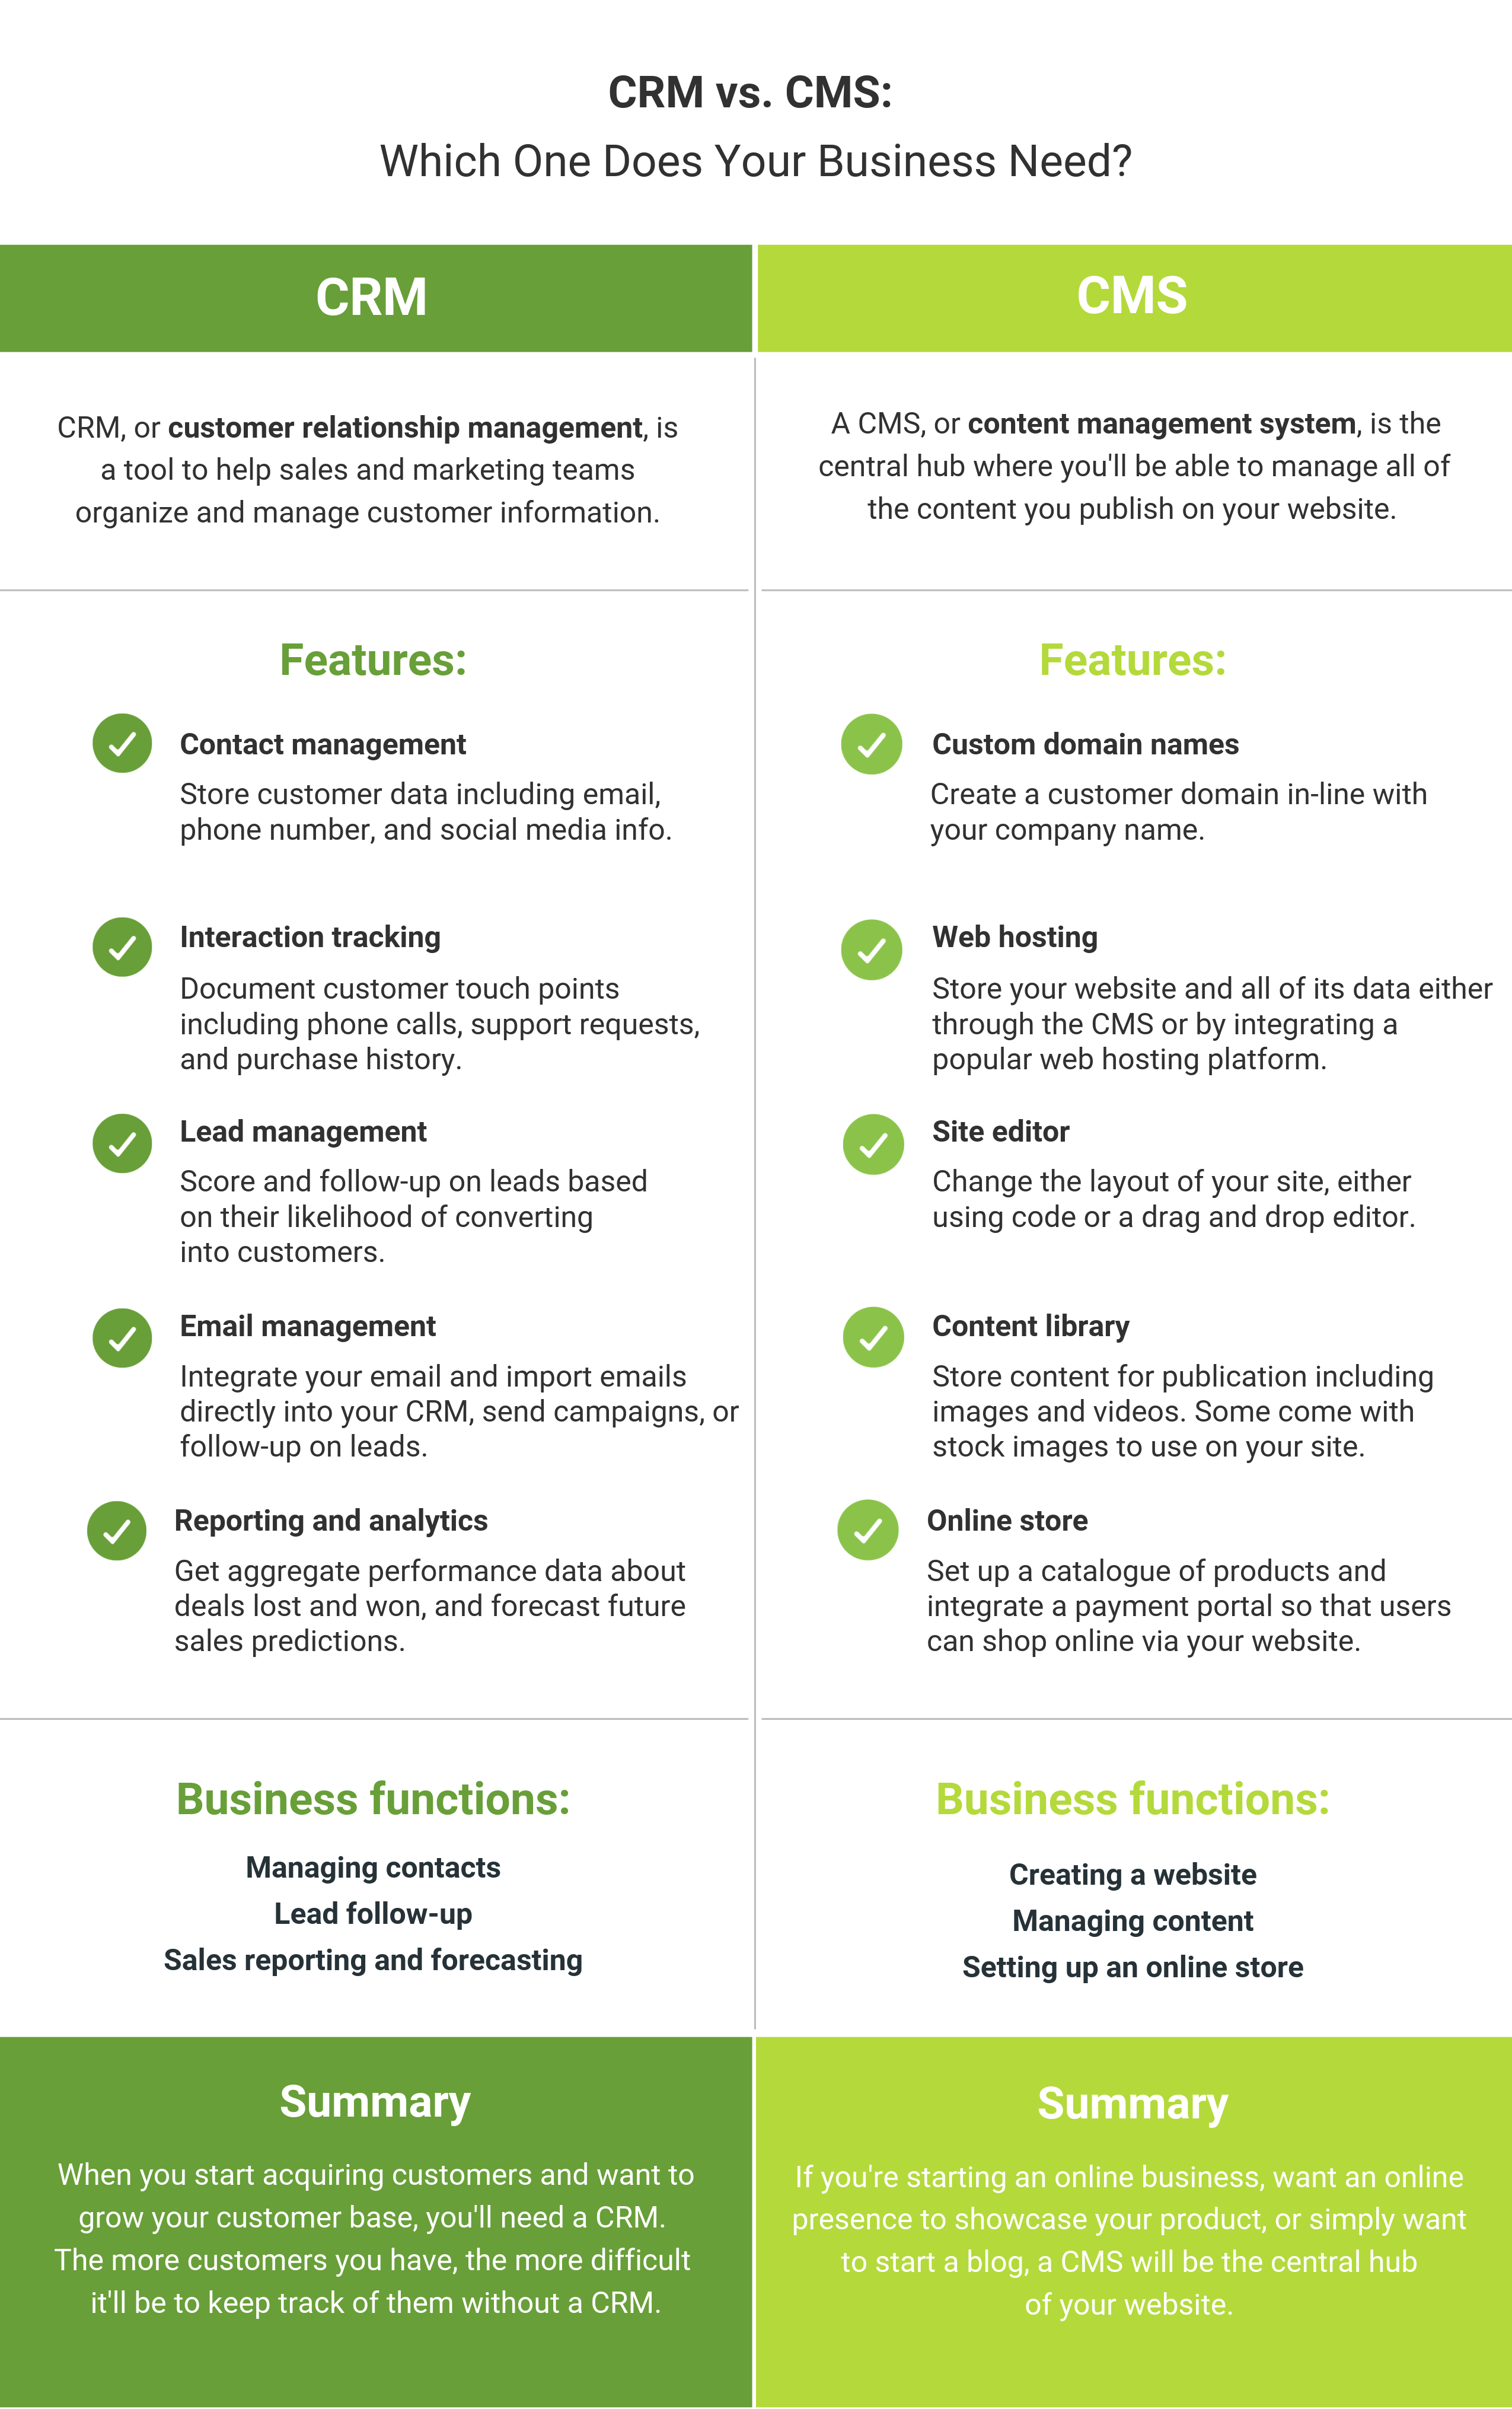 Infographic showing the key differences between CRM vs. CMS